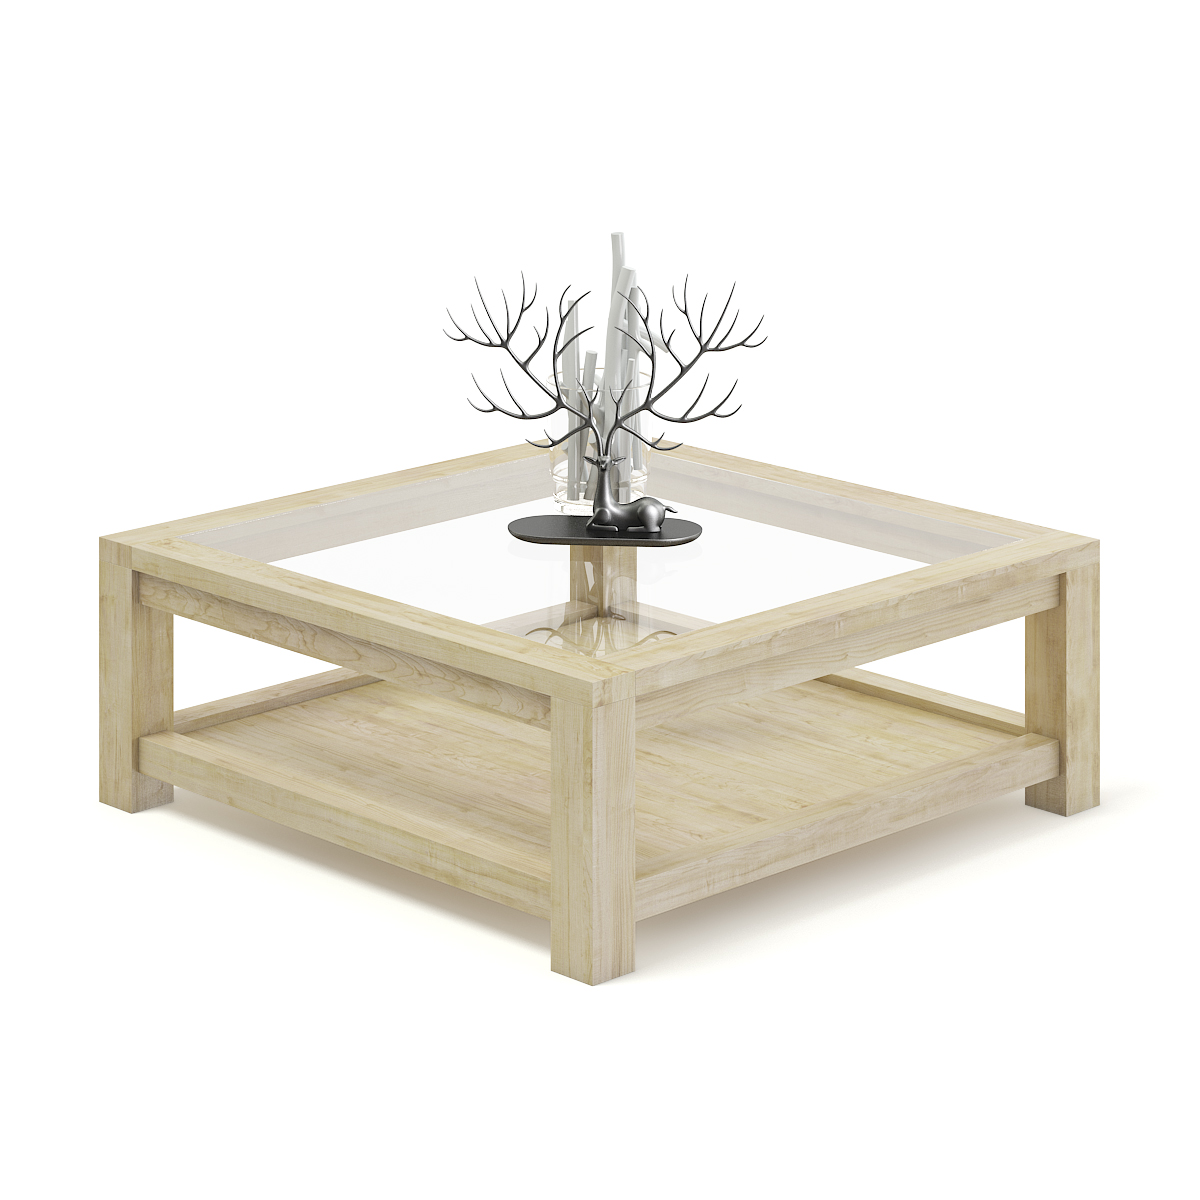 Picture of: Wood And Glass Coffee Table 3d Model By Cgaxis 3docean